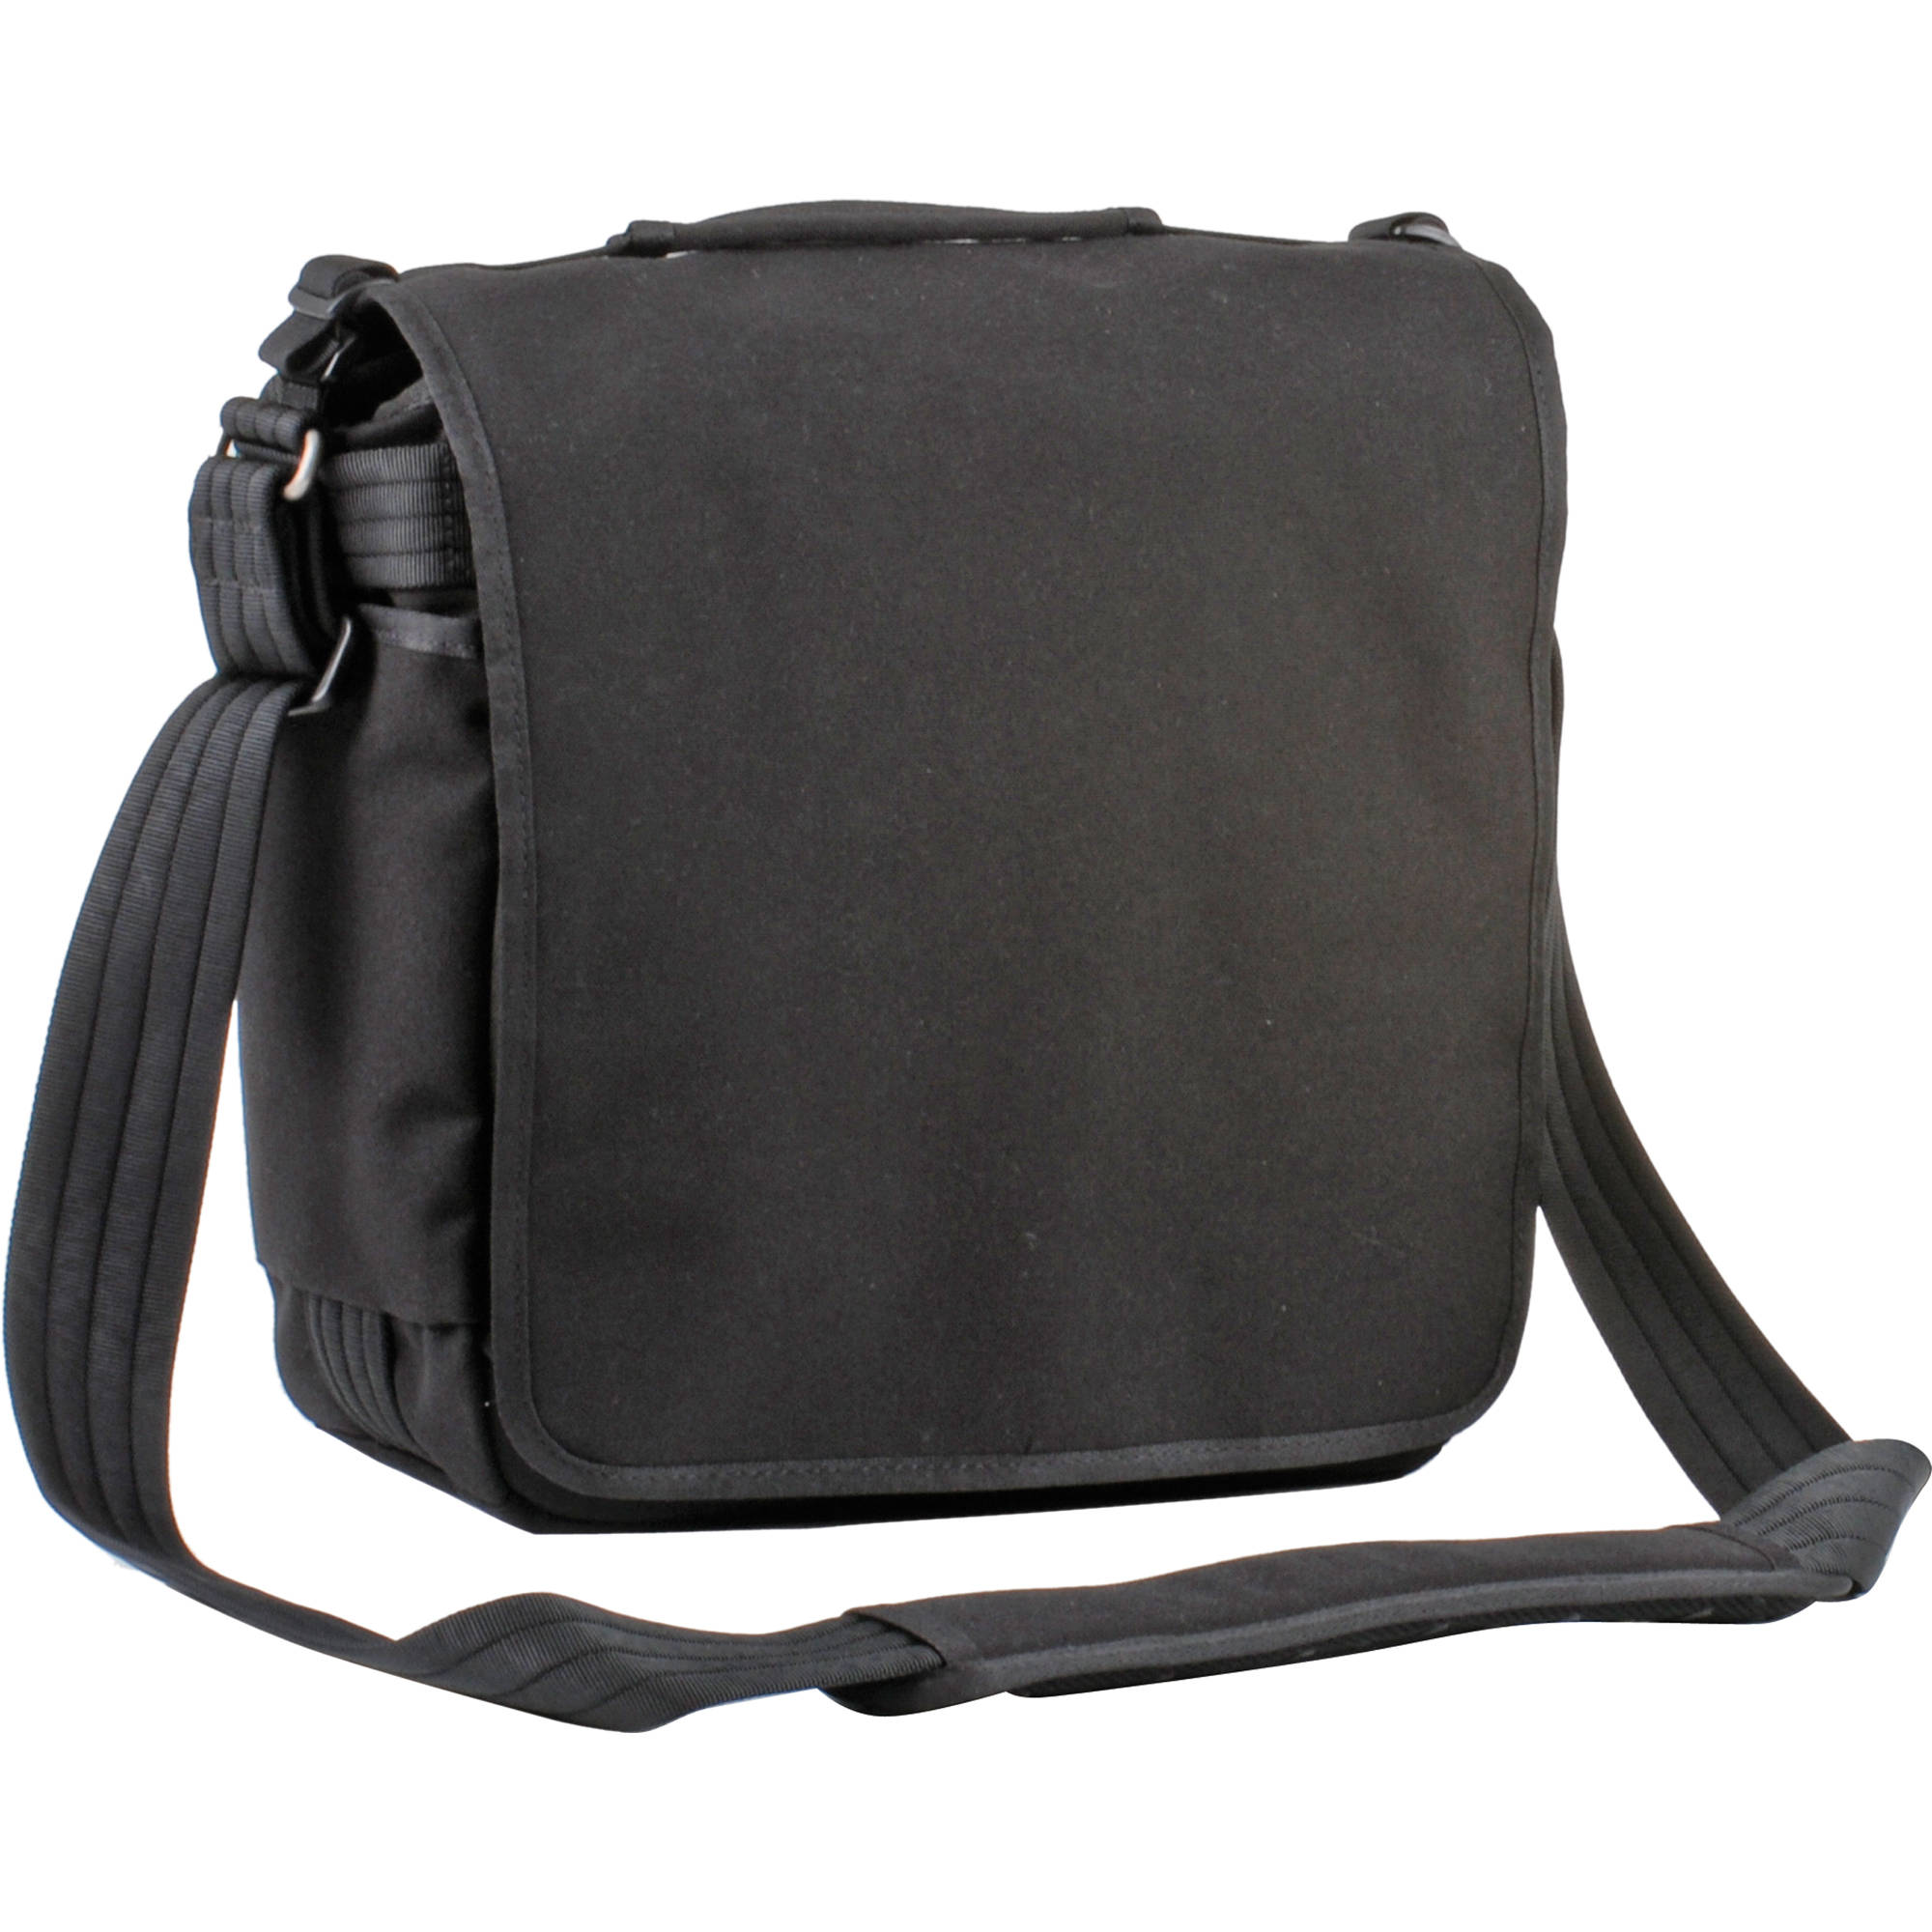 Think Tank Photo Retrospective 20 Shoulder Bag (Black) 762 B&H